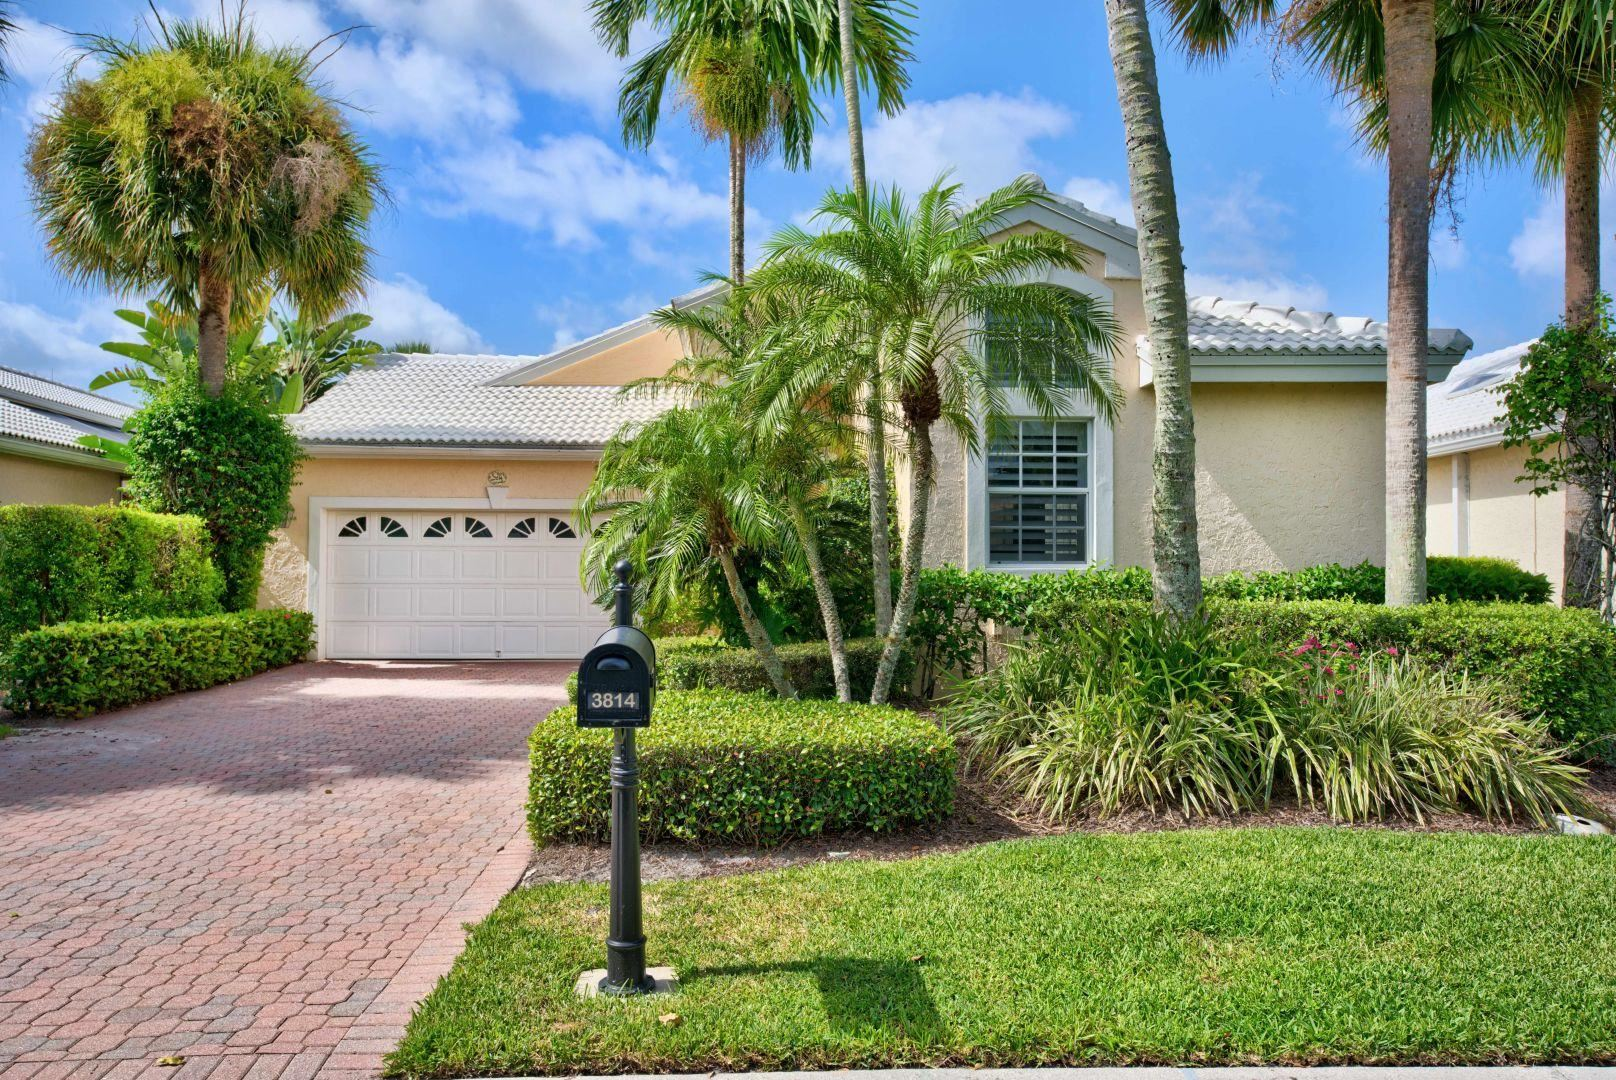 3814 Longview Court, Jupiter, FL 33477 - #: RX-10636099